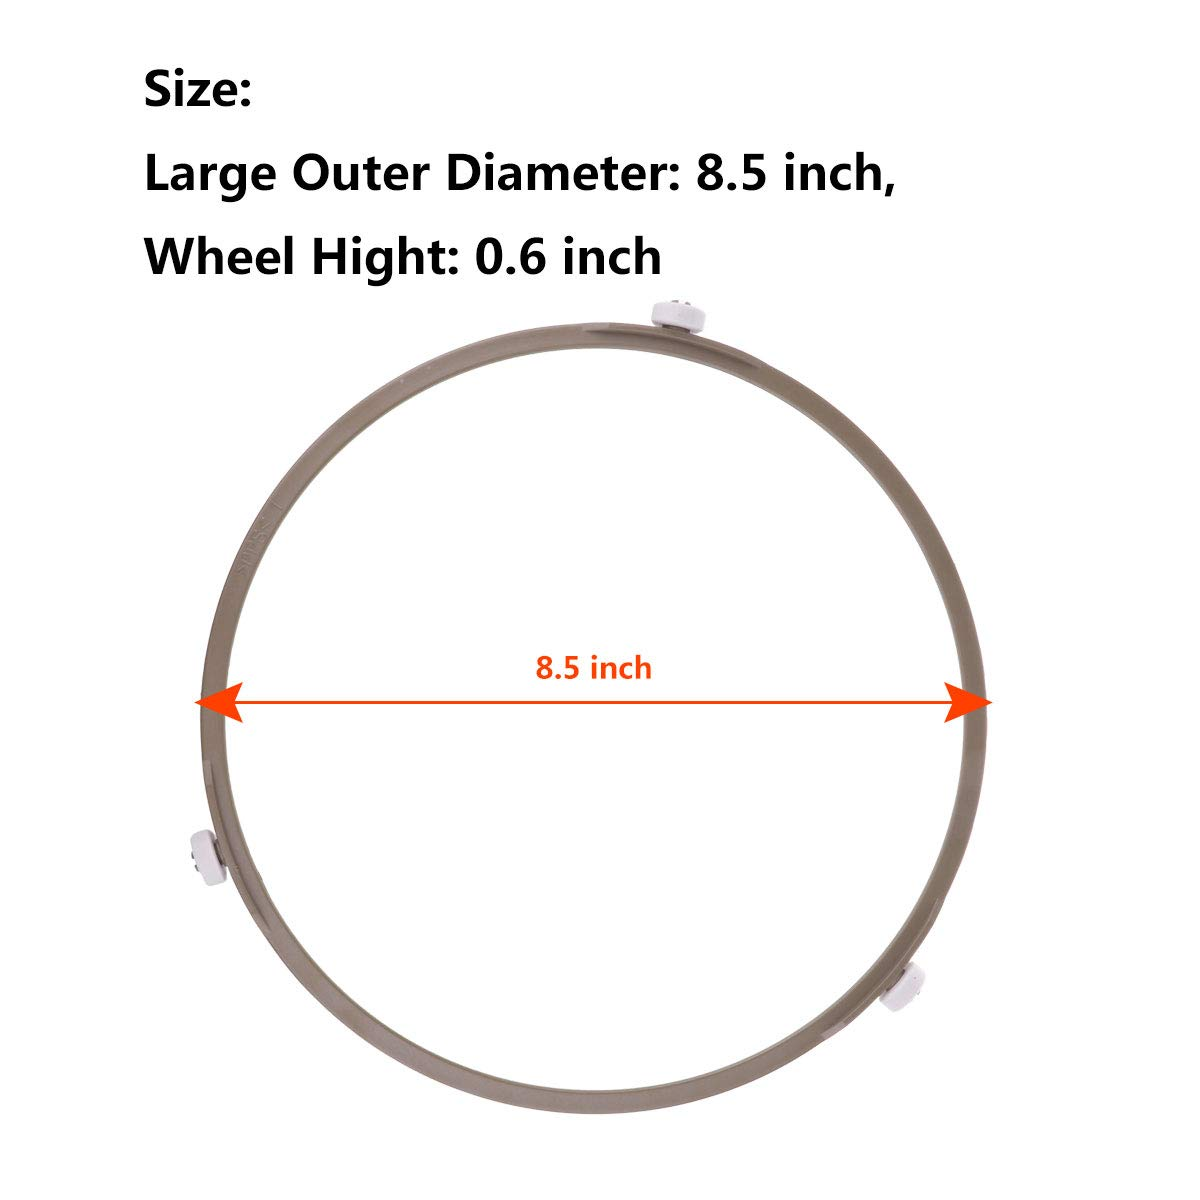 CHICTRY Microwave Oven Glass Turntable Circle Fittings Replacement Bracket Base Plate Tray Rotating Ring Support Roller Beige Small